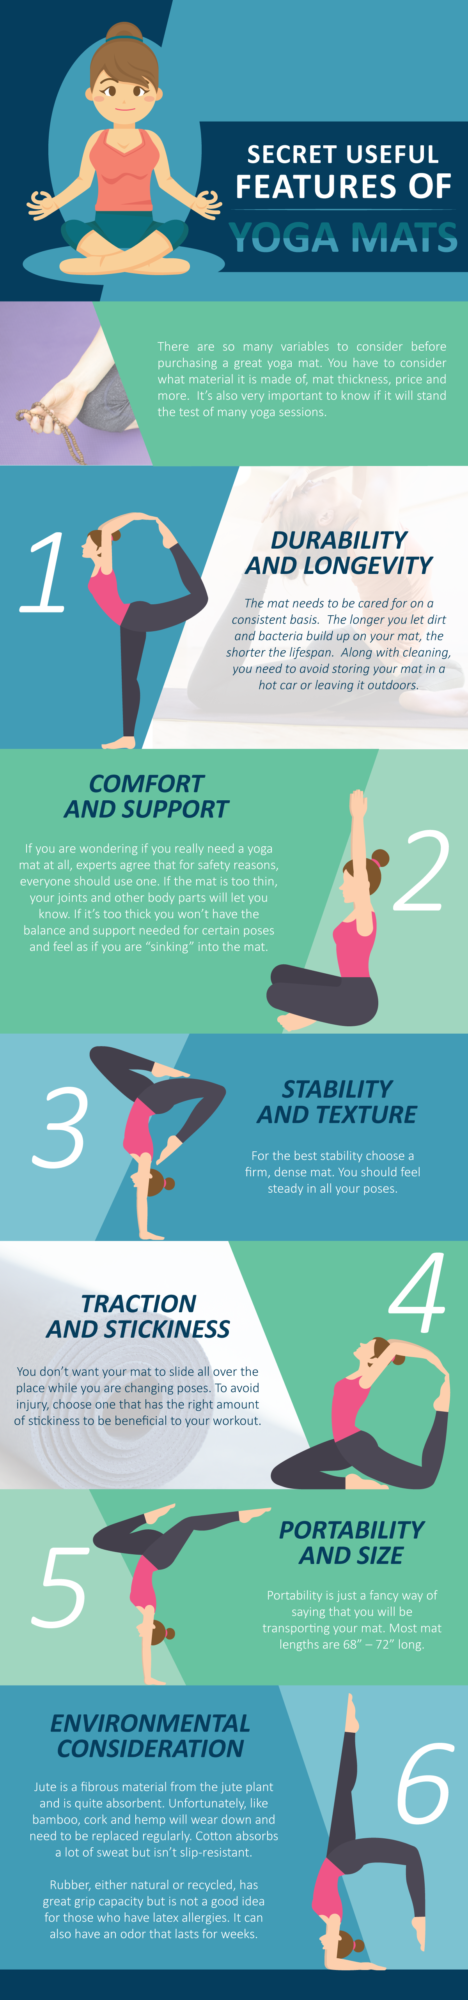 4 questions to ask yourself when picking the BEST yoga mat for your needs. Secret useful features of yoga mats + reviews on the BEST yoga mats